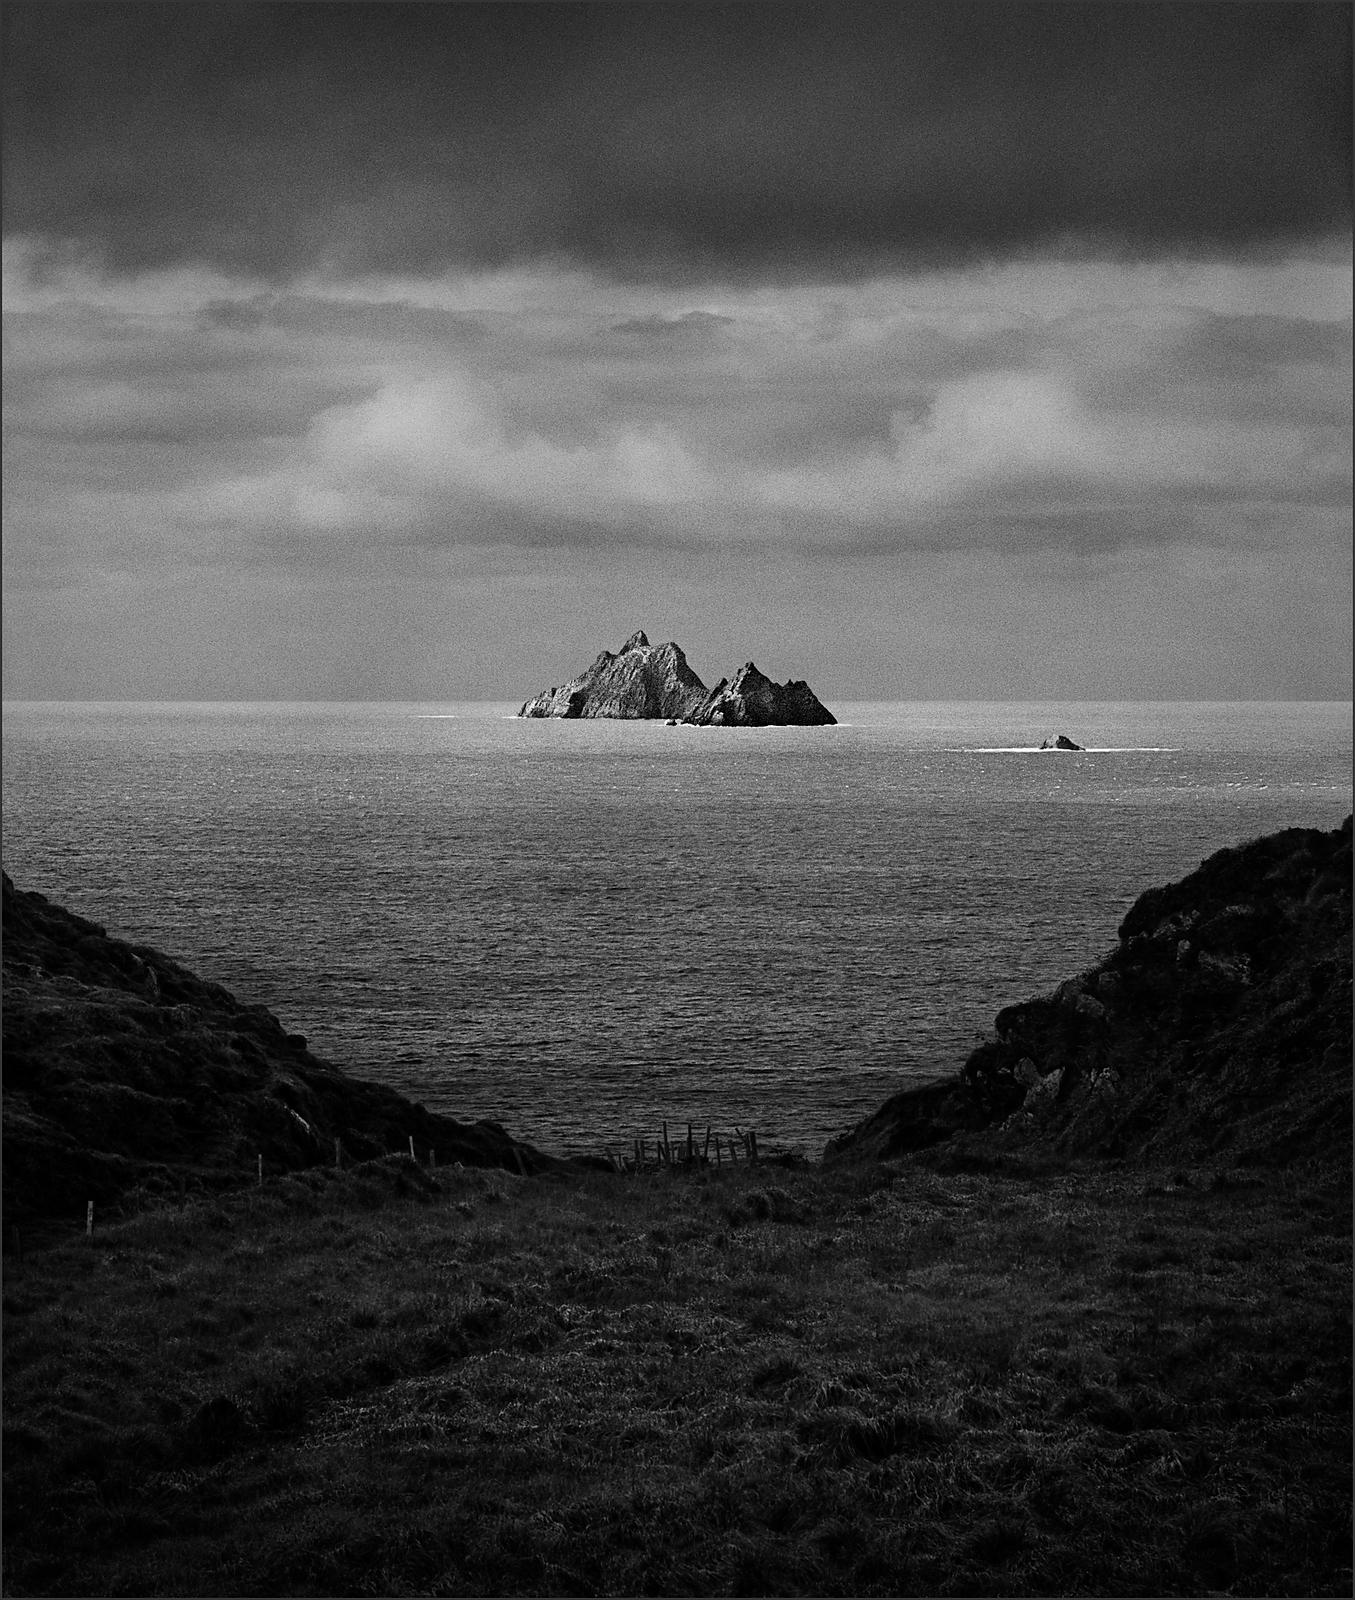 Skellig Micheal & Little Skellig Islands, County Kerry, Ireland